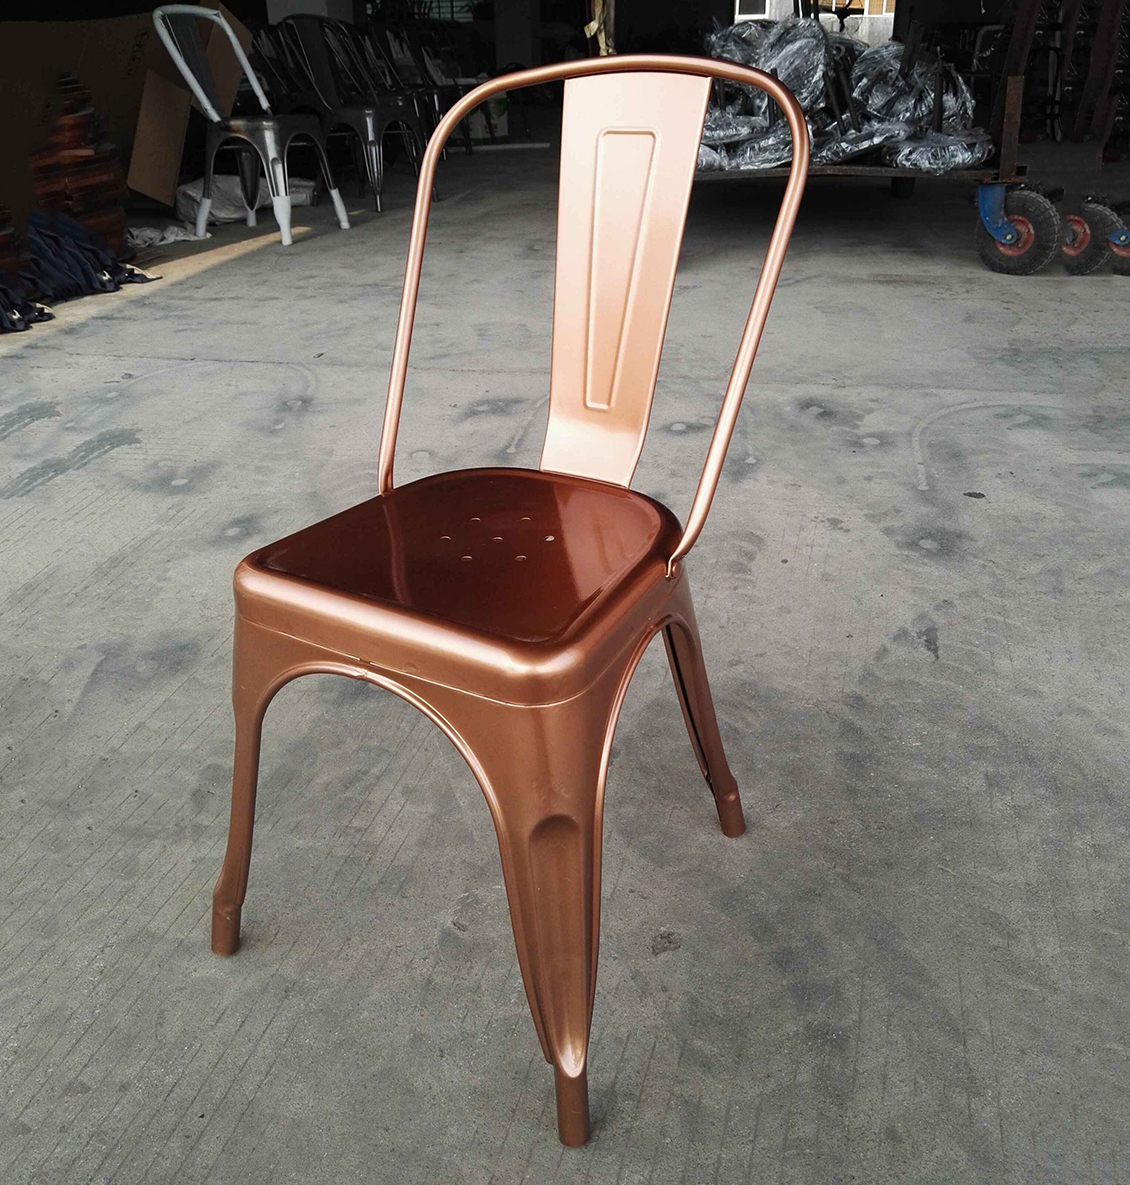 copper color chair shiny copper metal chair